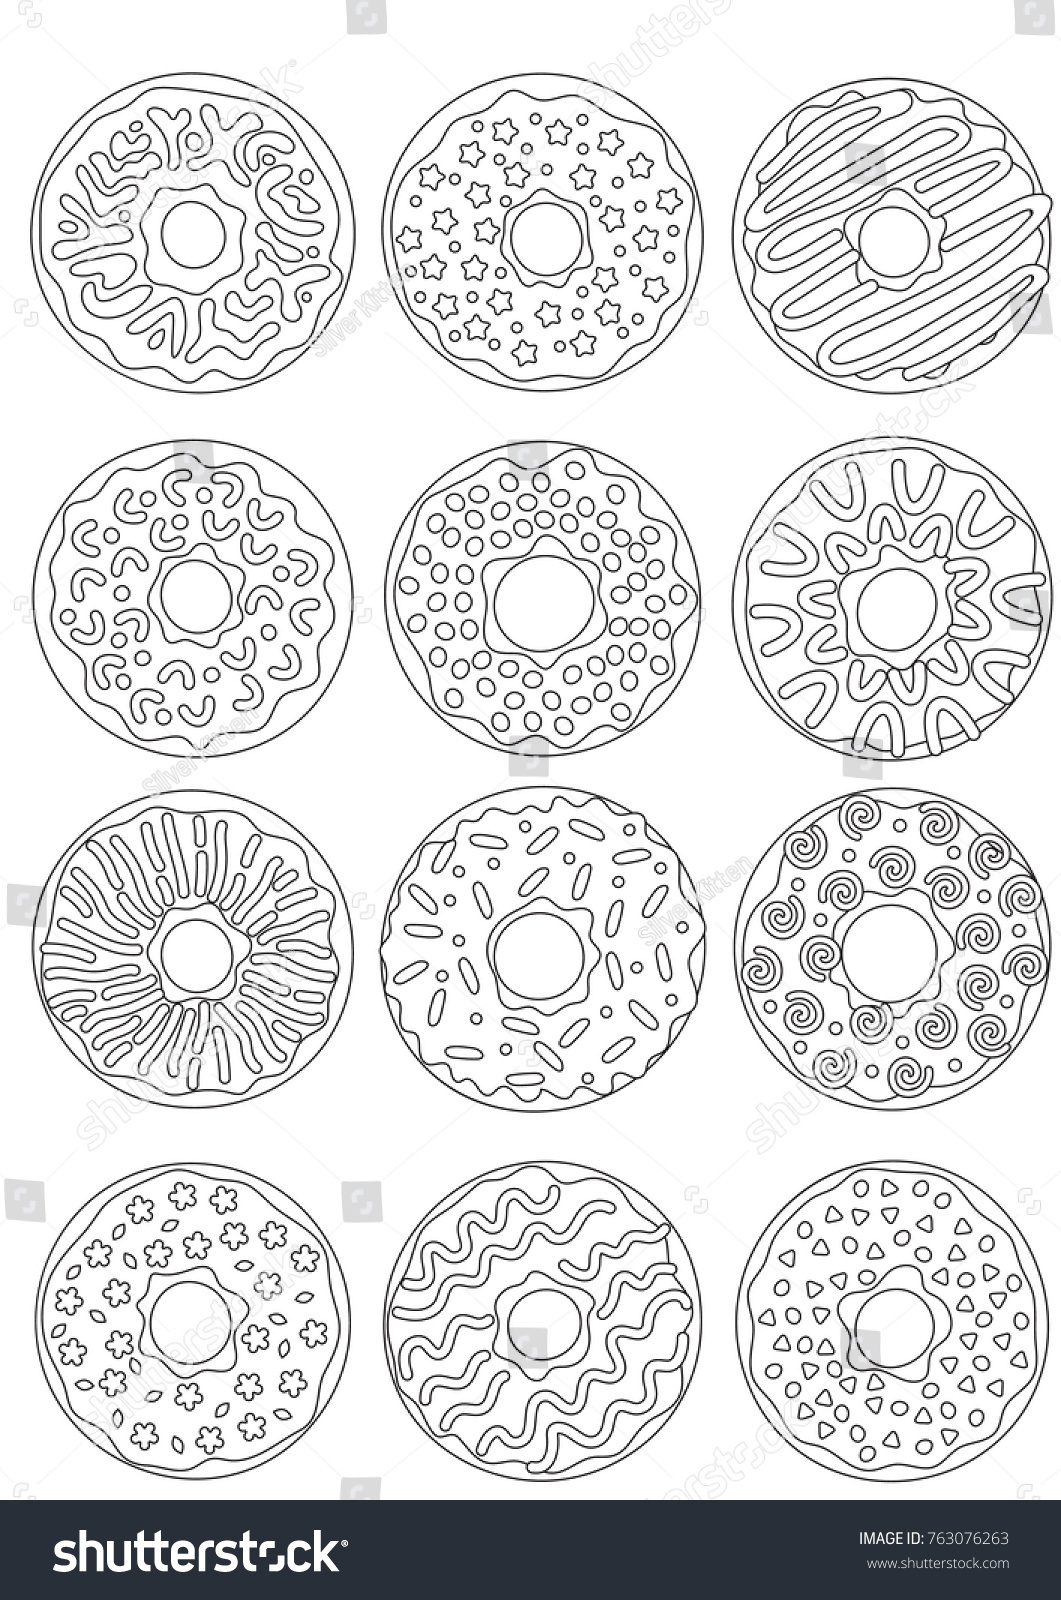 Outlined Zentangle Antistress Coloring Page Donuts Stock